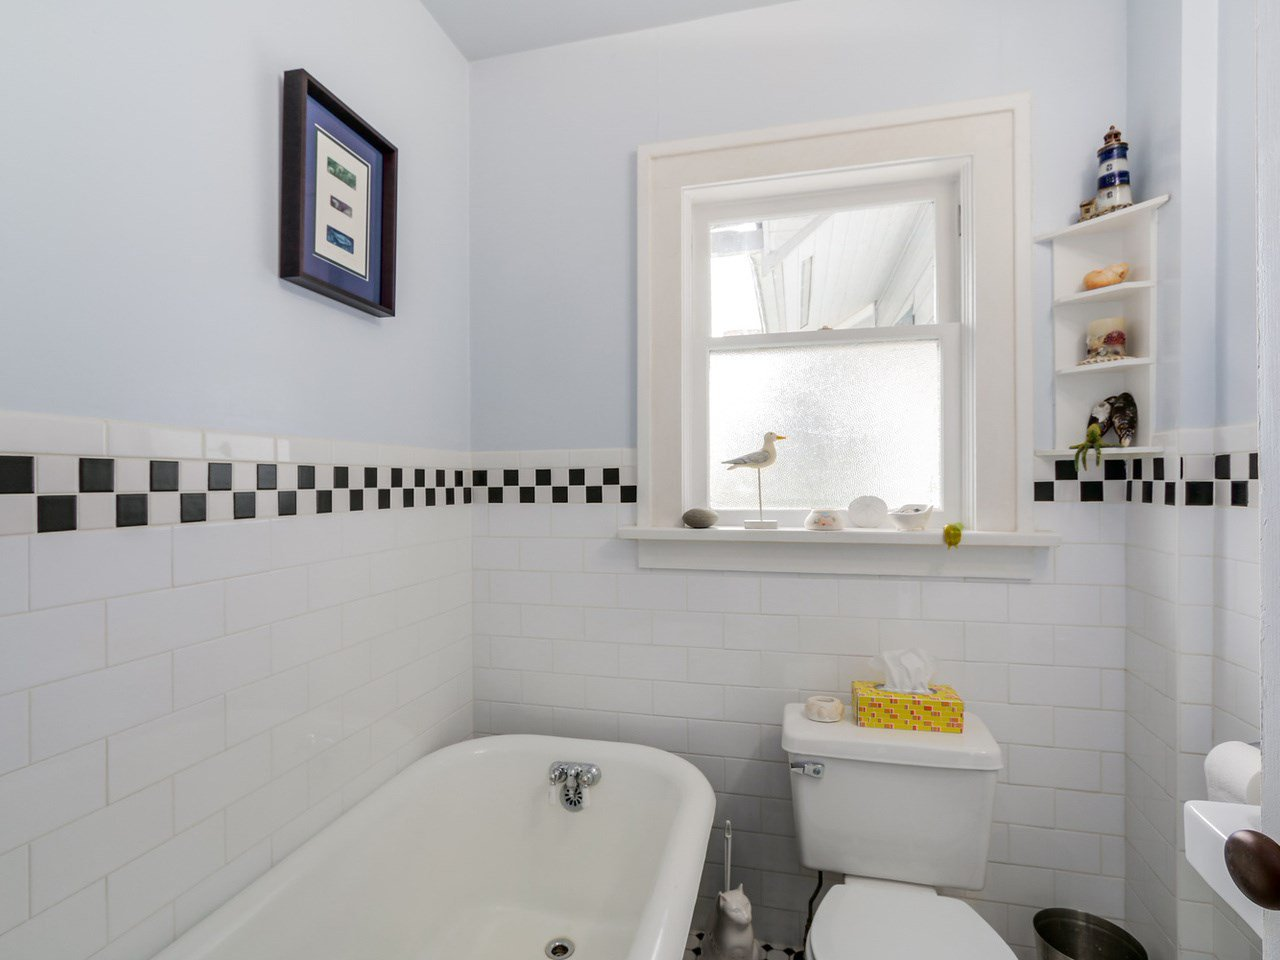 Photo 12: Photos: 1760 E 37TH AVENUE in Vancouver: Victoria VE House for sale (Vancouver East)  : MLS®# R2059026